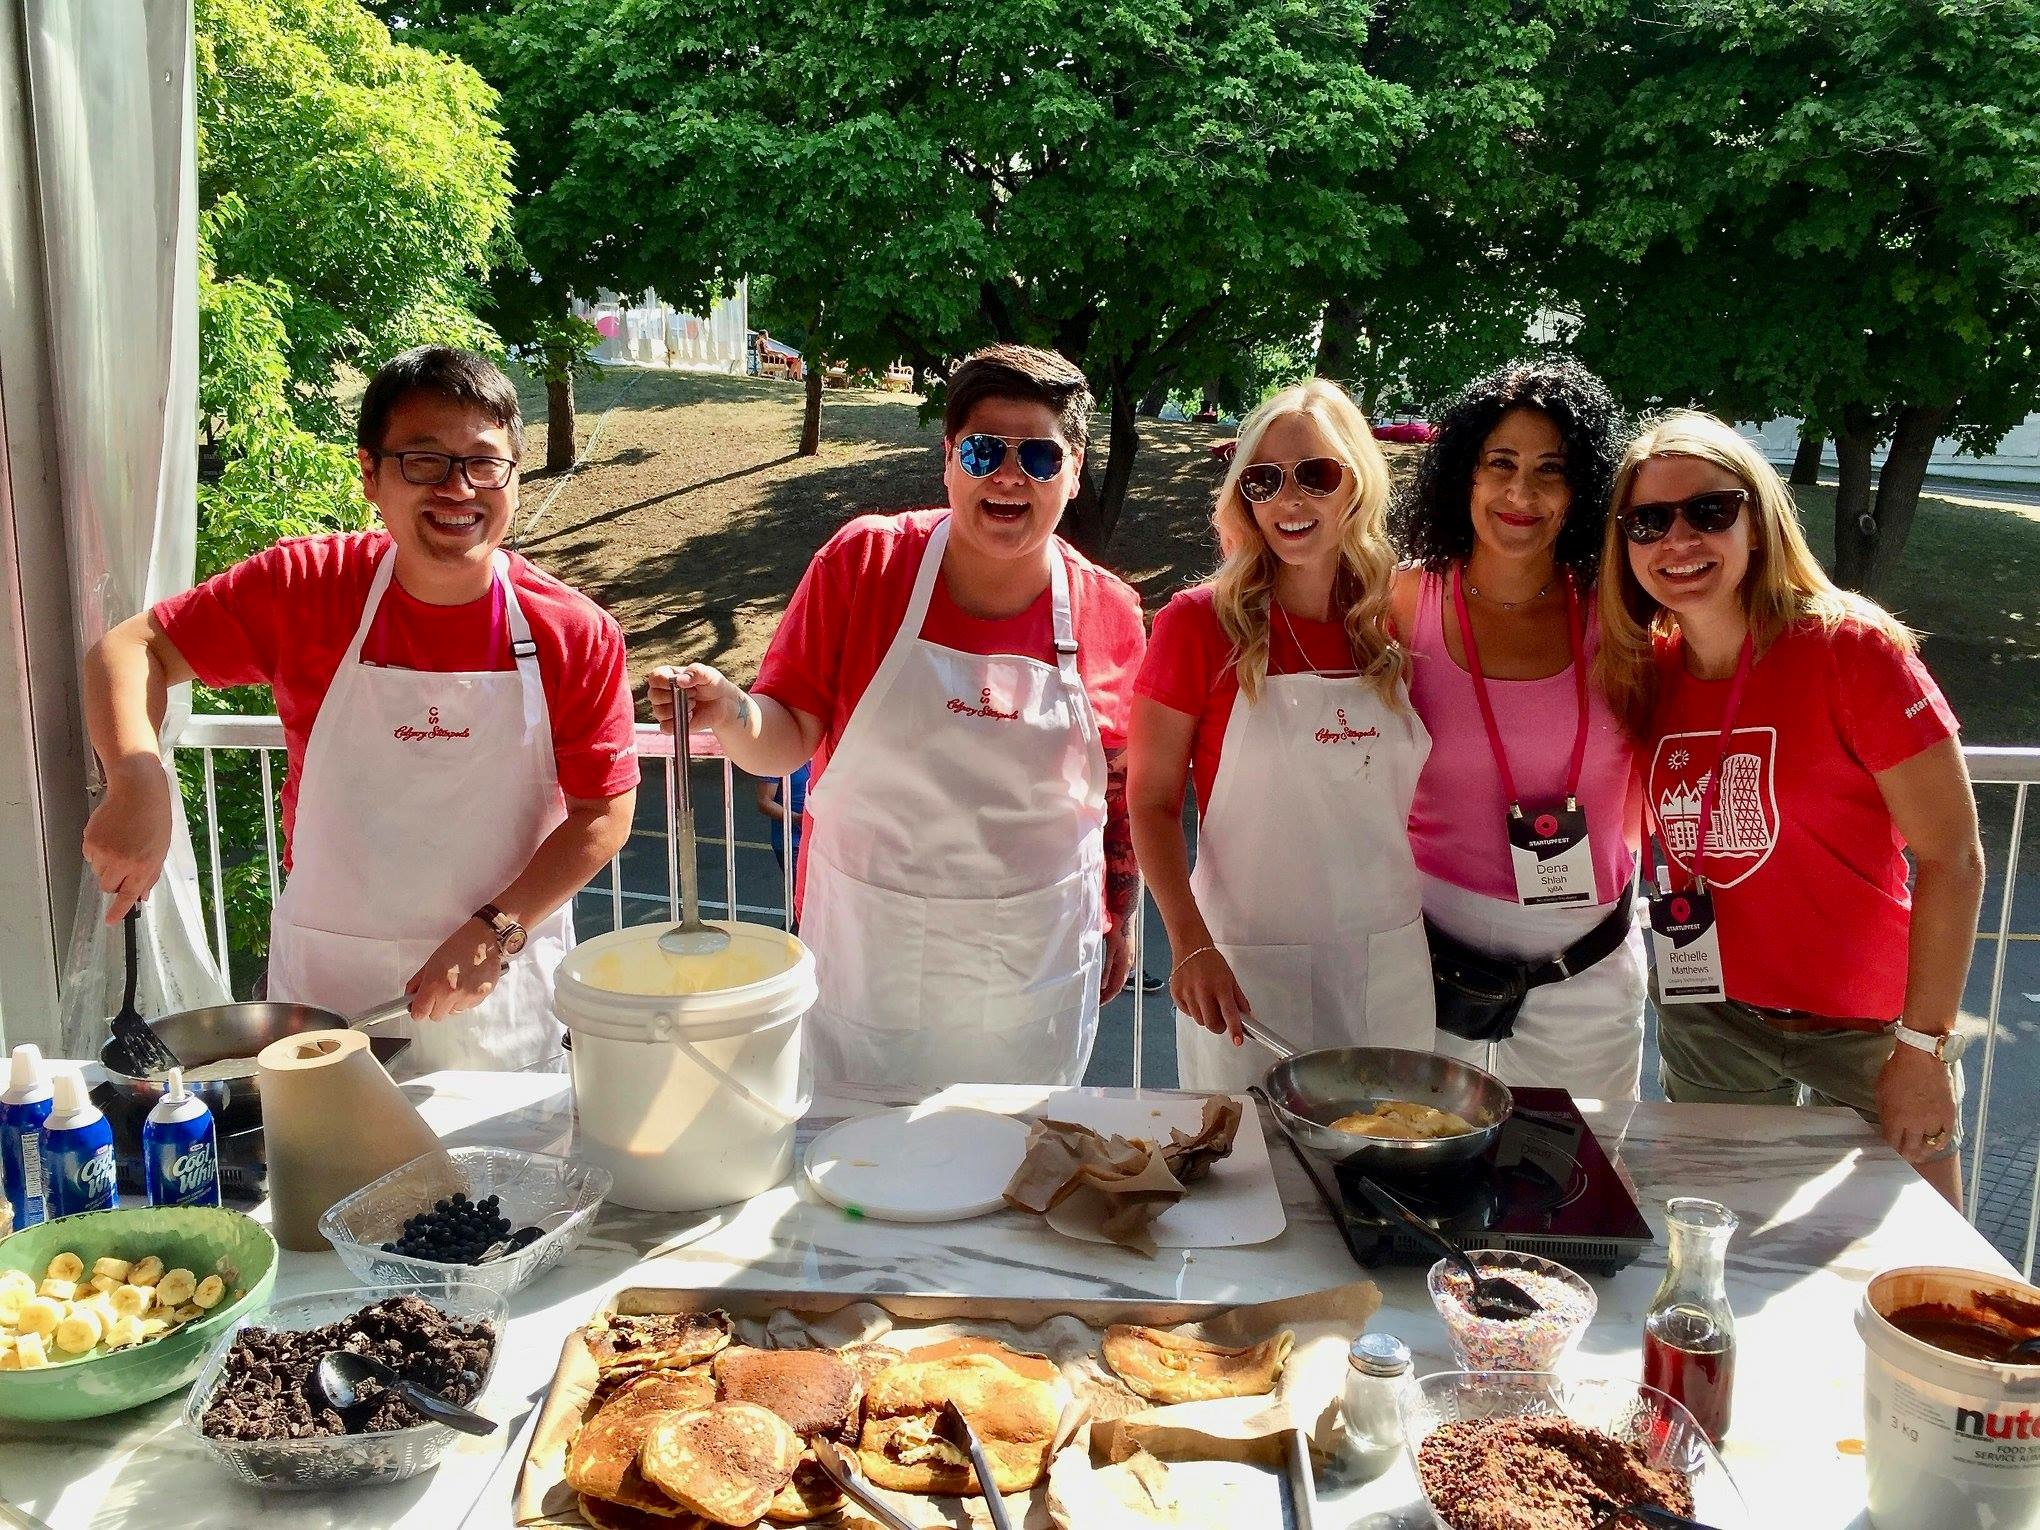 Members of the Calgary crew flipping and serving pancakes sponsored by Calgary Stampede. L to R: Jonathan Chan (ShareSmart), Bobbie Racette (Virtual Gurus), Jenn Delconte (Startup Calgary), Dena Shlah (IGBA), Richelle Martin (Calgary Technologies Inc.)